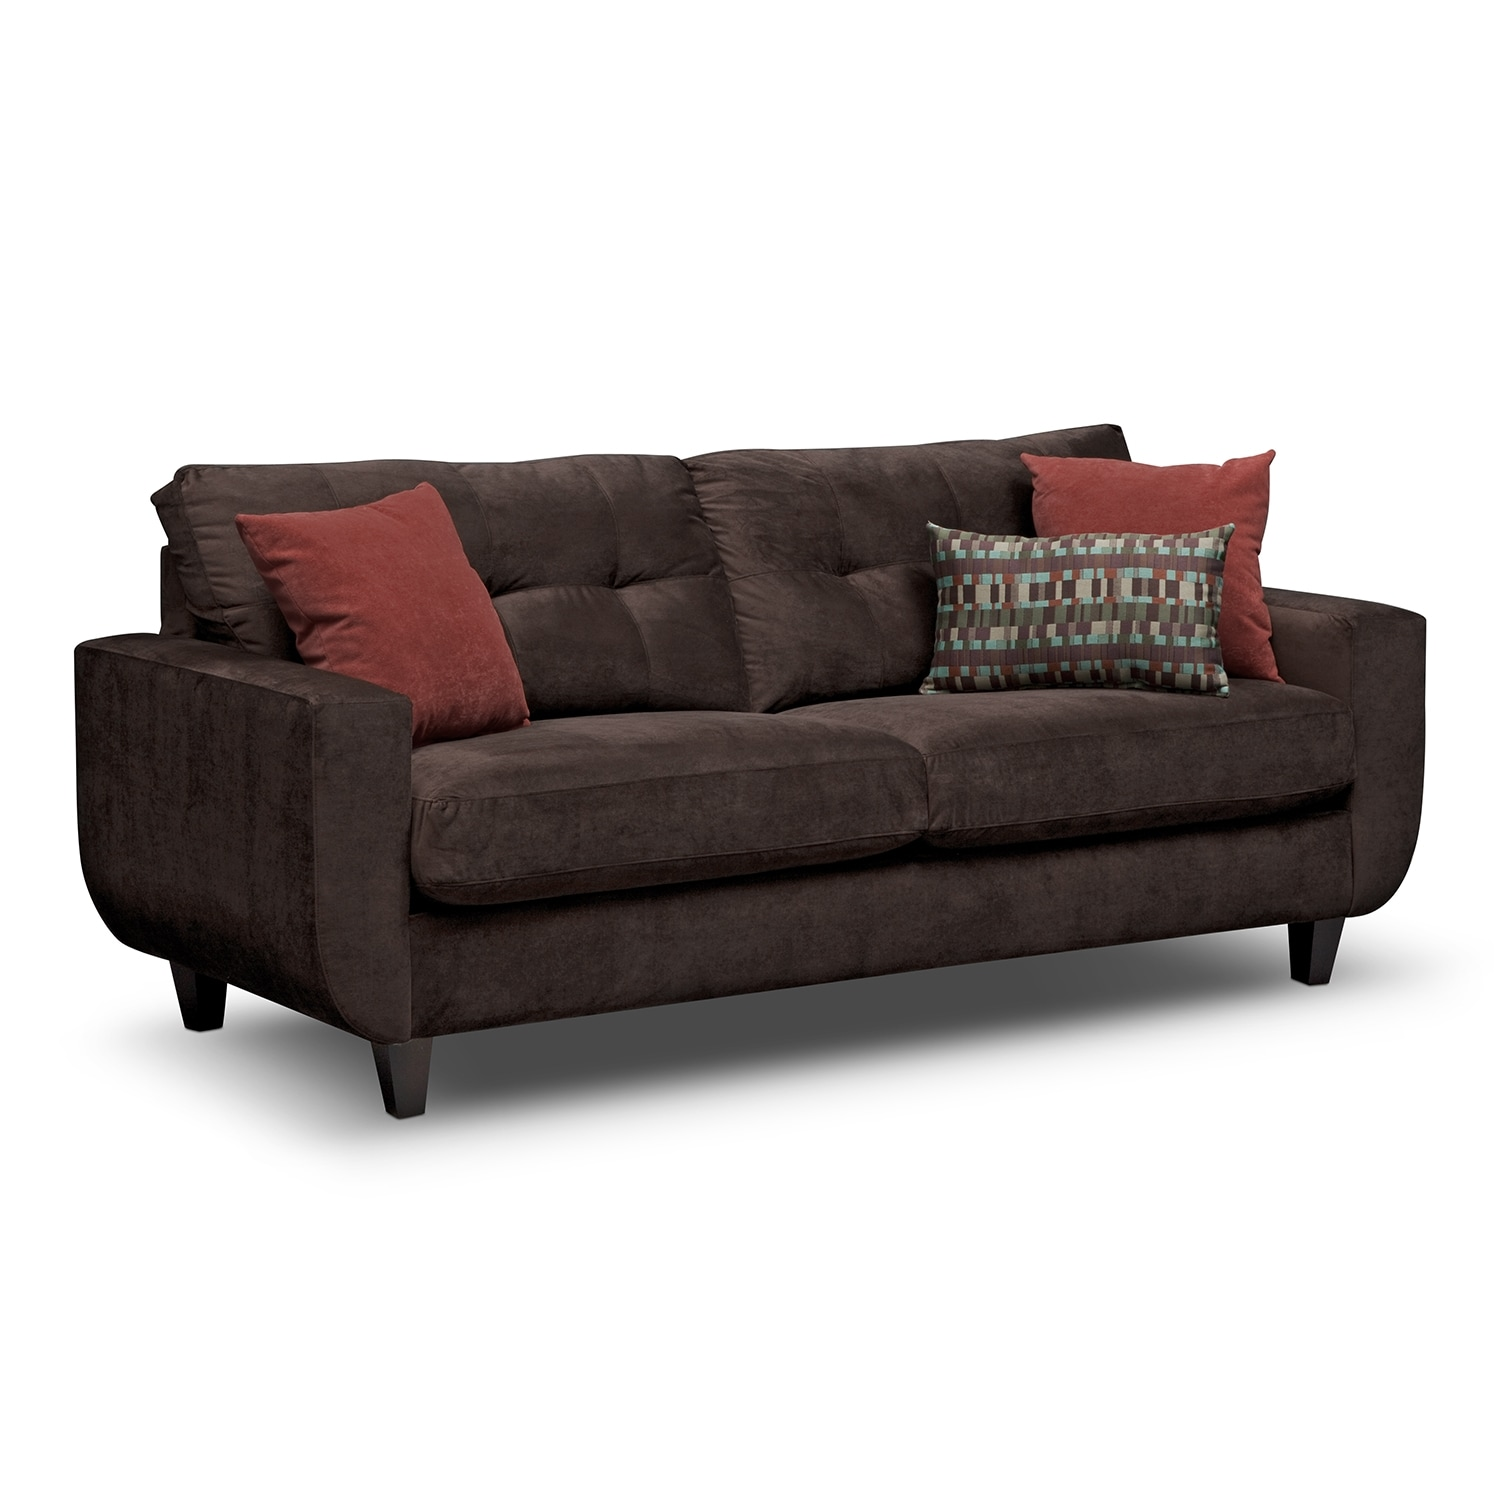 Living Room Furniture - West Village Chocolate Sofa